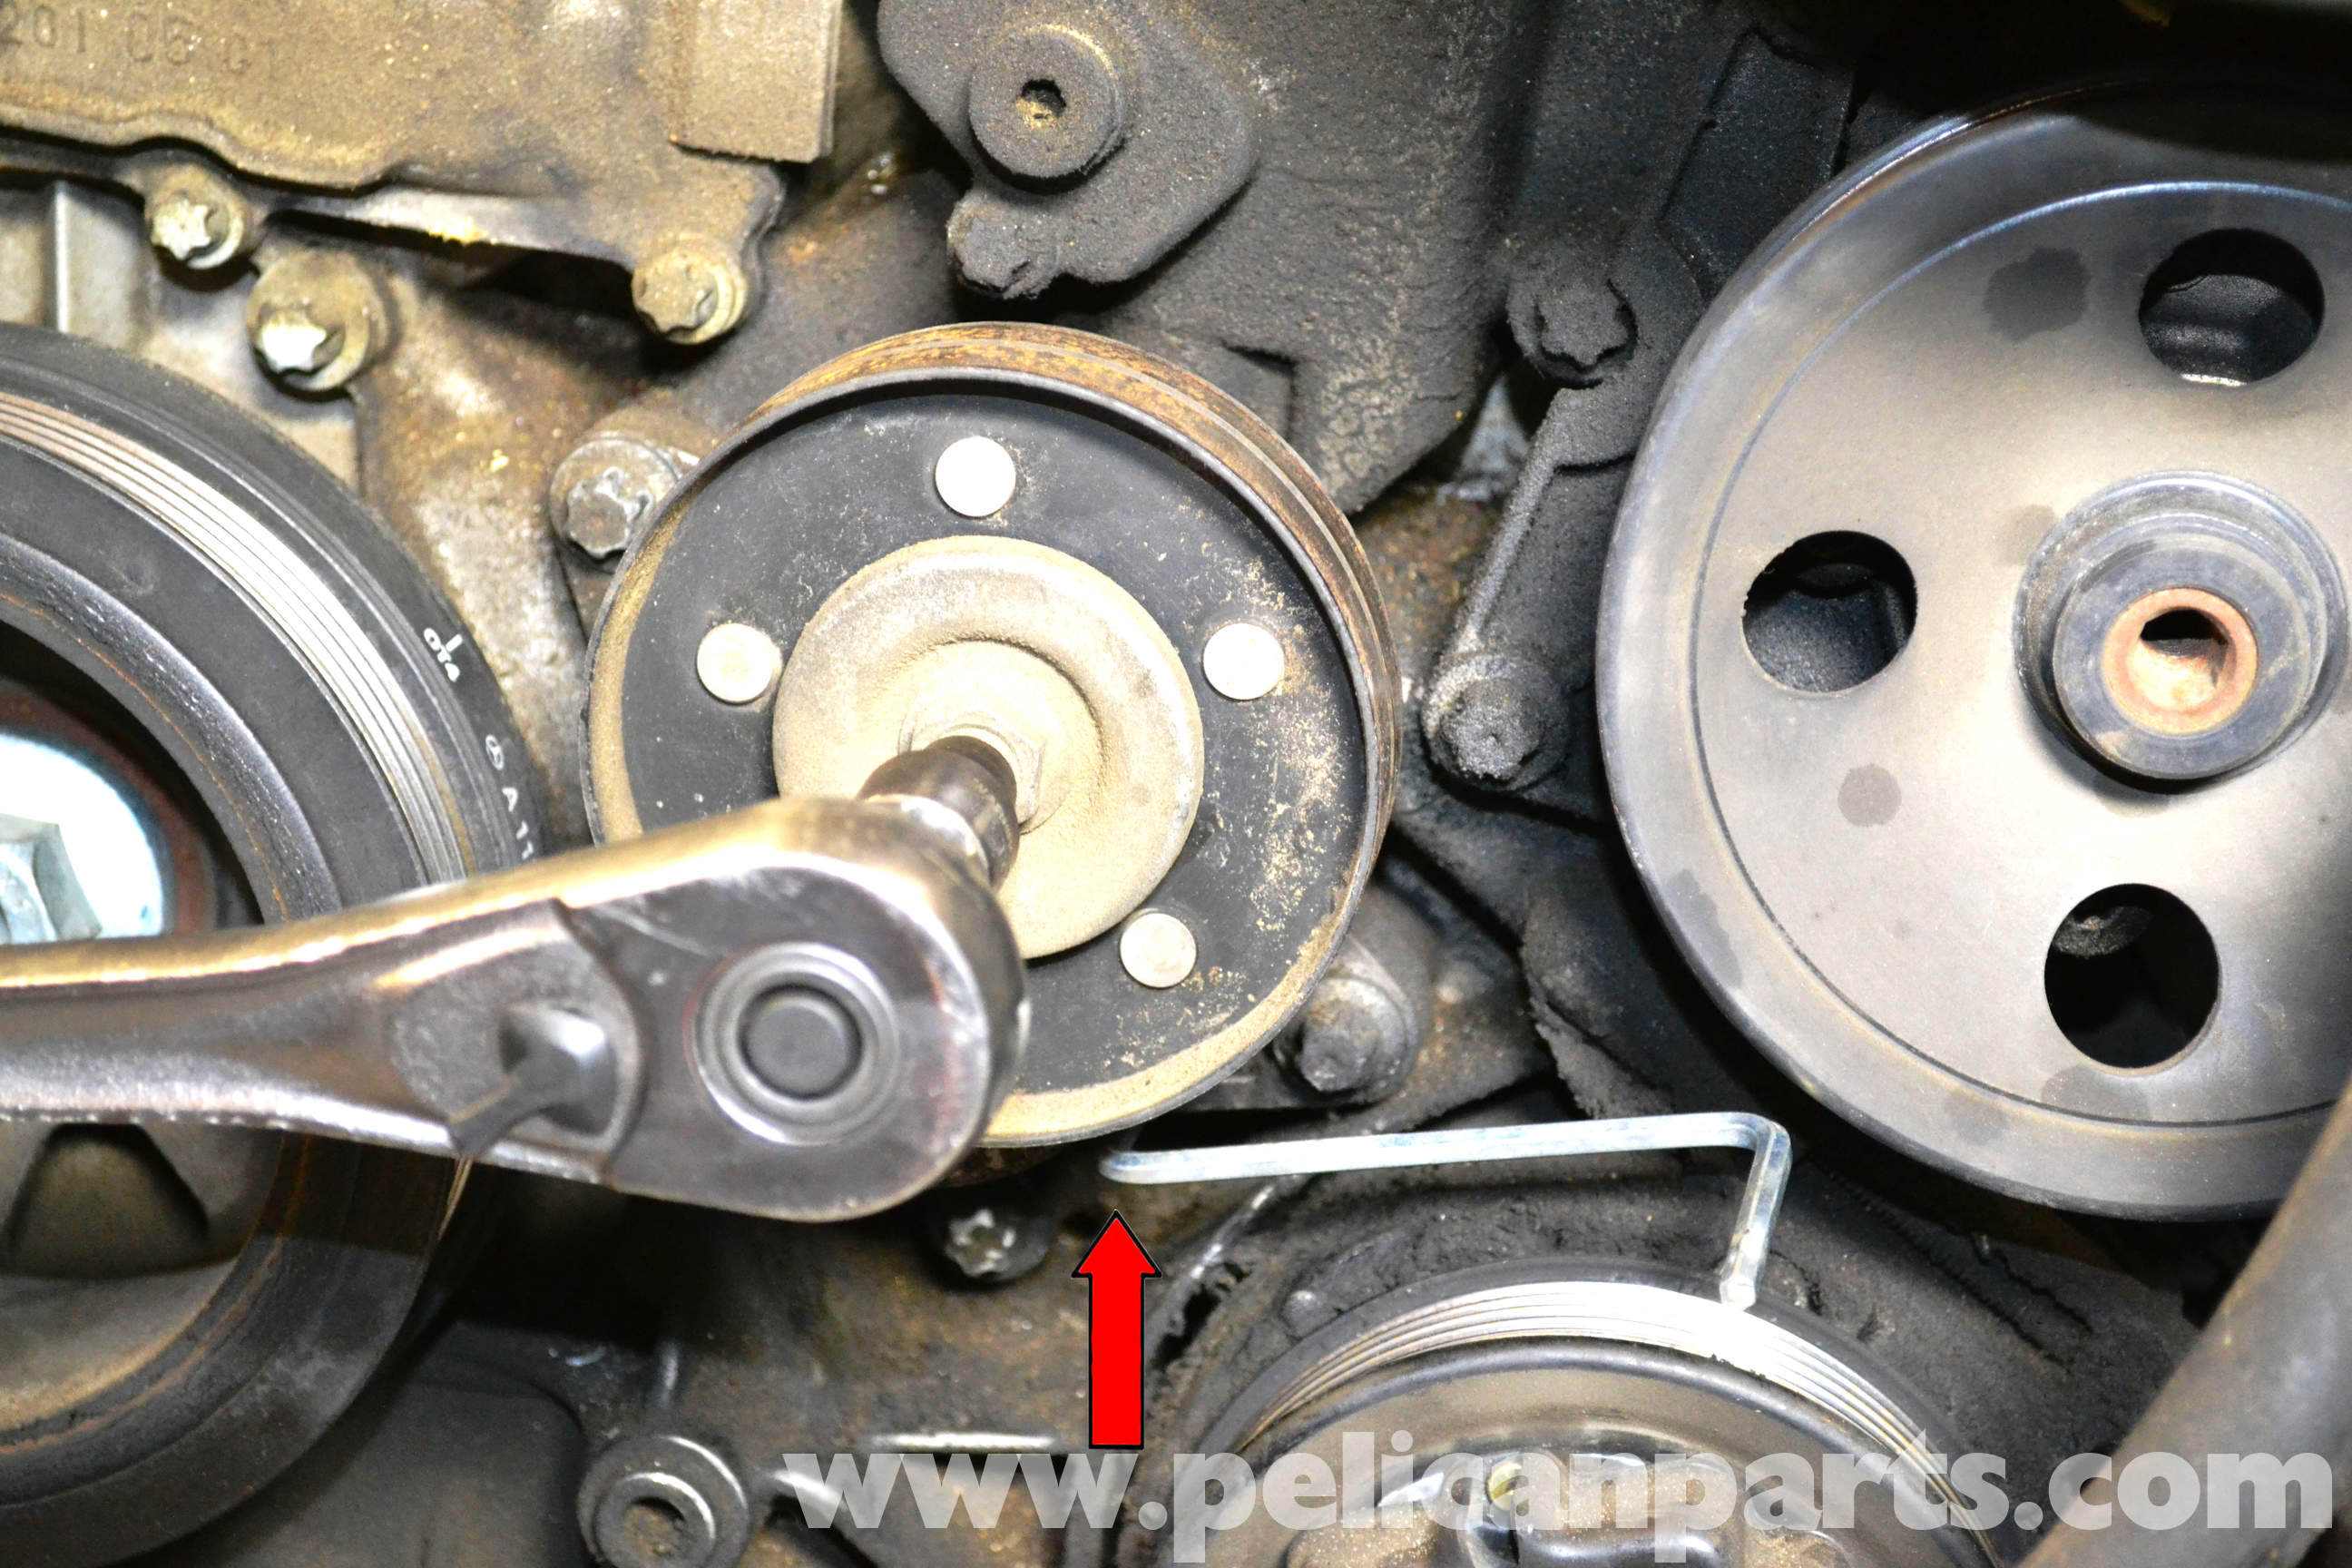 P 0900c152800544a8 furthermore 8546l Cadillac Change Serpentine Belts Specifically additionally 2001 2006 Honda Accord Civic Prelude Belt Diagram together with DK Alternator 185 as well Toyota Camry 2002 Toyota Camry Serpentine Belt Replacement 3. on toyota alternator pulley